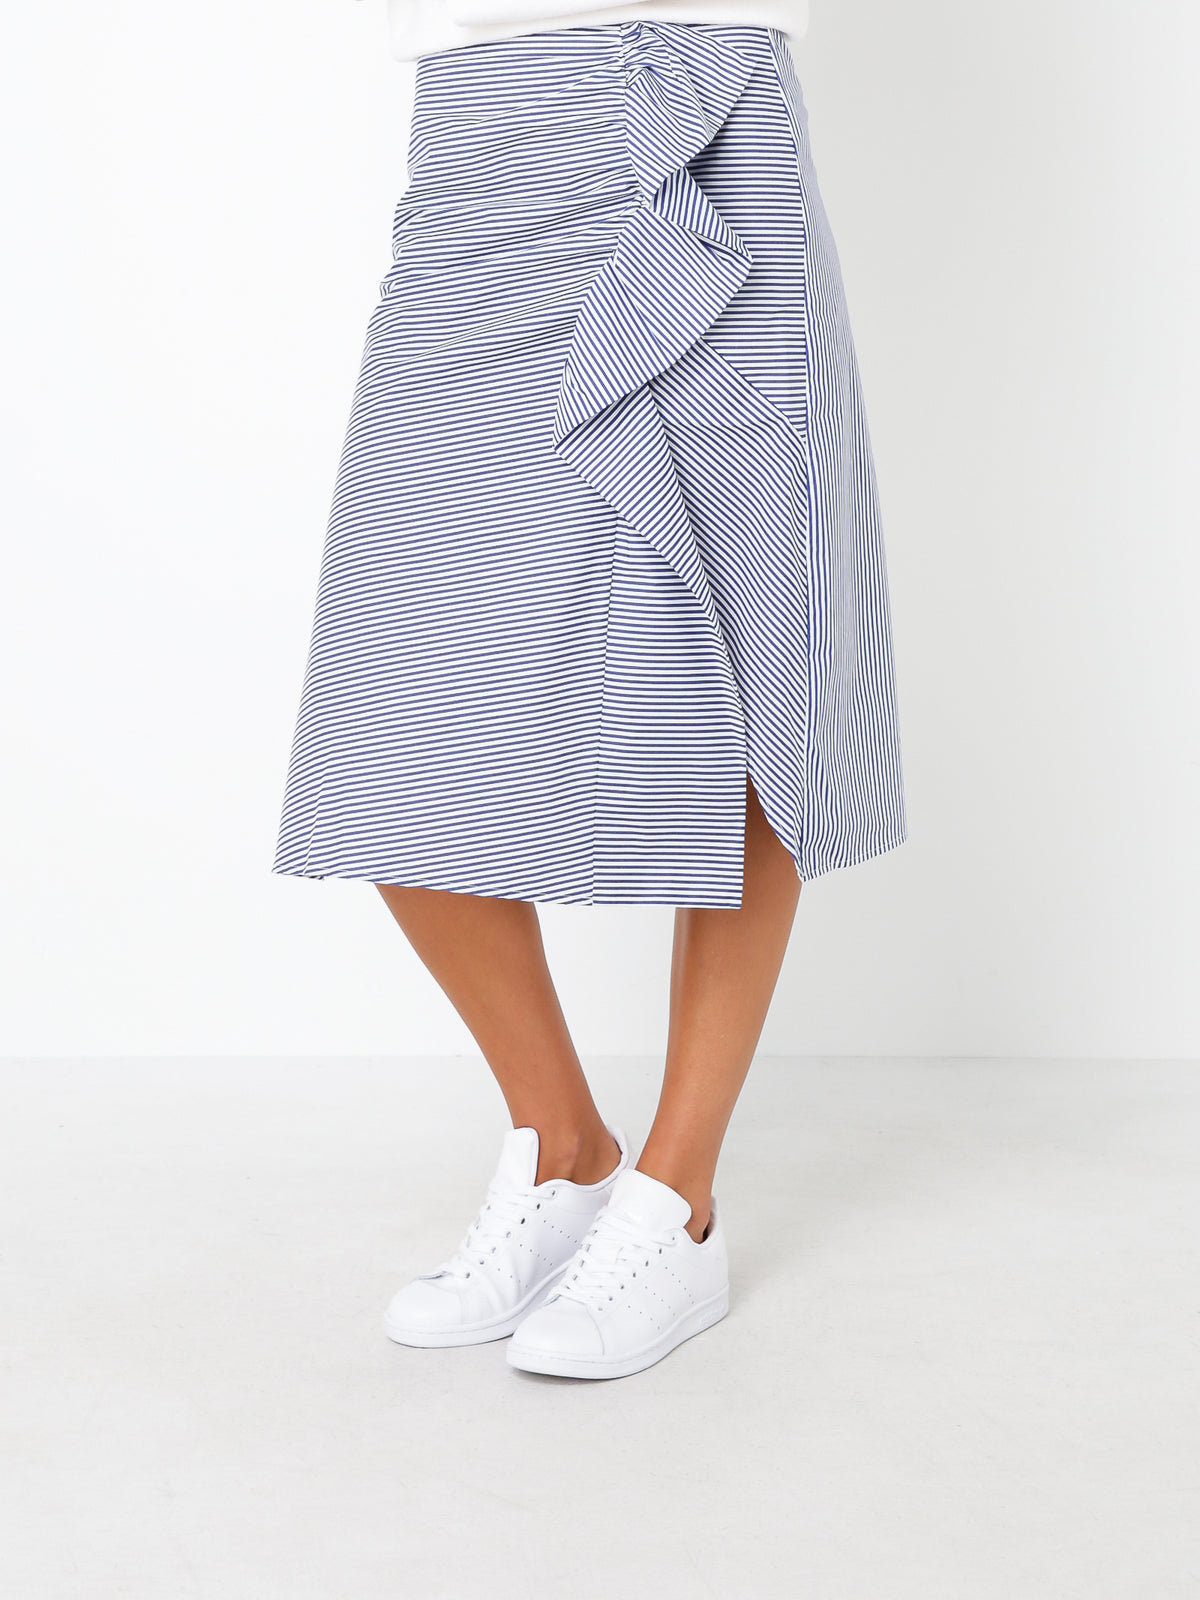 Larsson Skirt in White & Blue Stripe